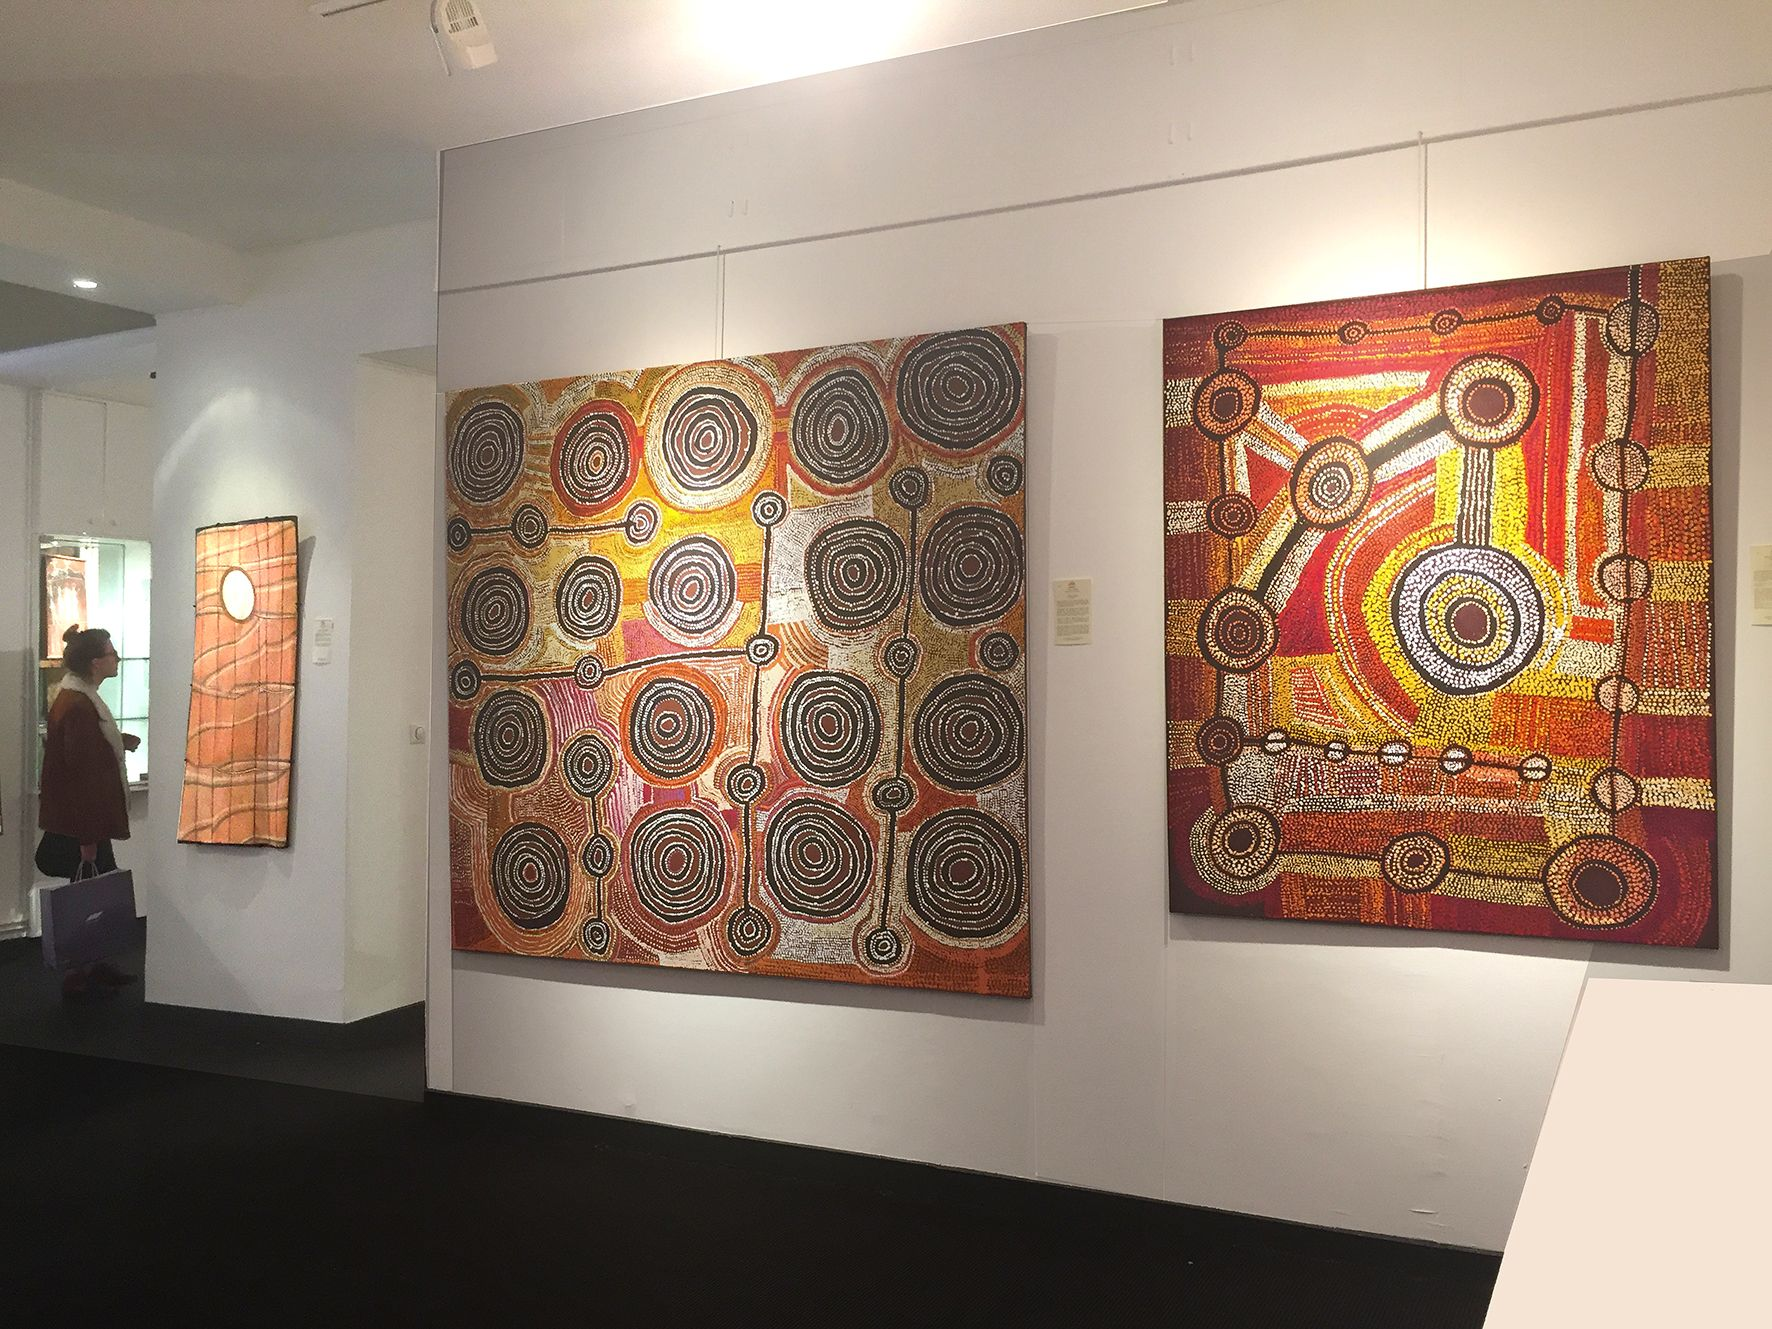 Trois œuvres présentées dans le cadre du Parcours des Mondes 2017 : de gauche à droite, les artistes Kay Lindjuwanga de Maningrida, Taylor Cooper, Willy  Mutjantji Martin . © Photo : Aboriginal Signature Estrangin, with the courtesy of the artists and Maningrida, Kaltjiti Arts, Mimili Maku.